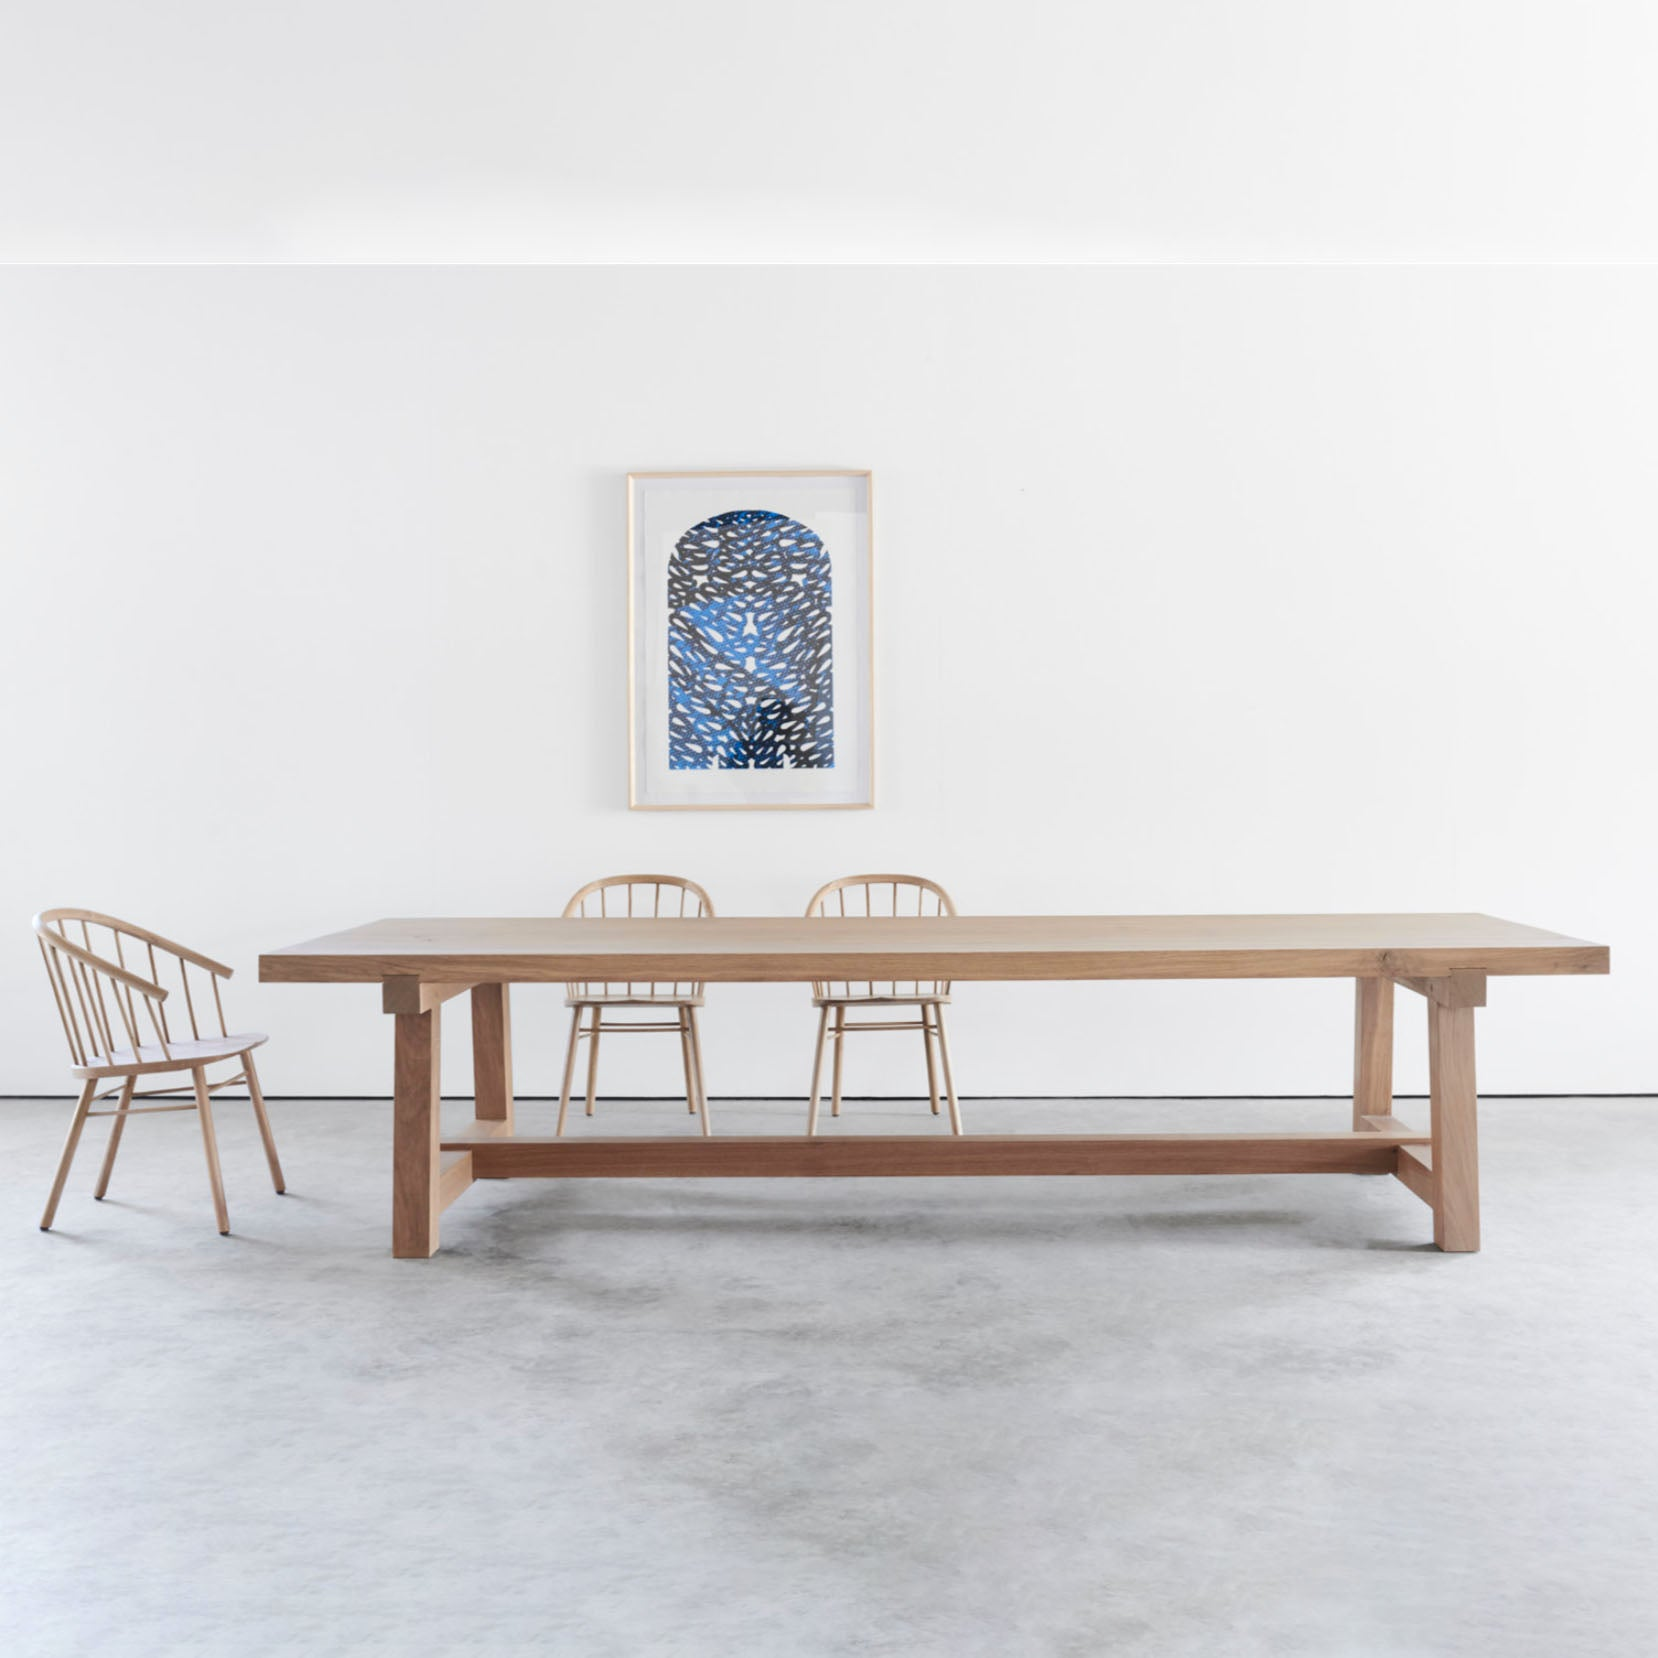 HARVEST FRENCH OAK DINING TABLE by James Mudge at SARZA. dining tables, French Oak, furniture, Harvest, James Mudge, tables